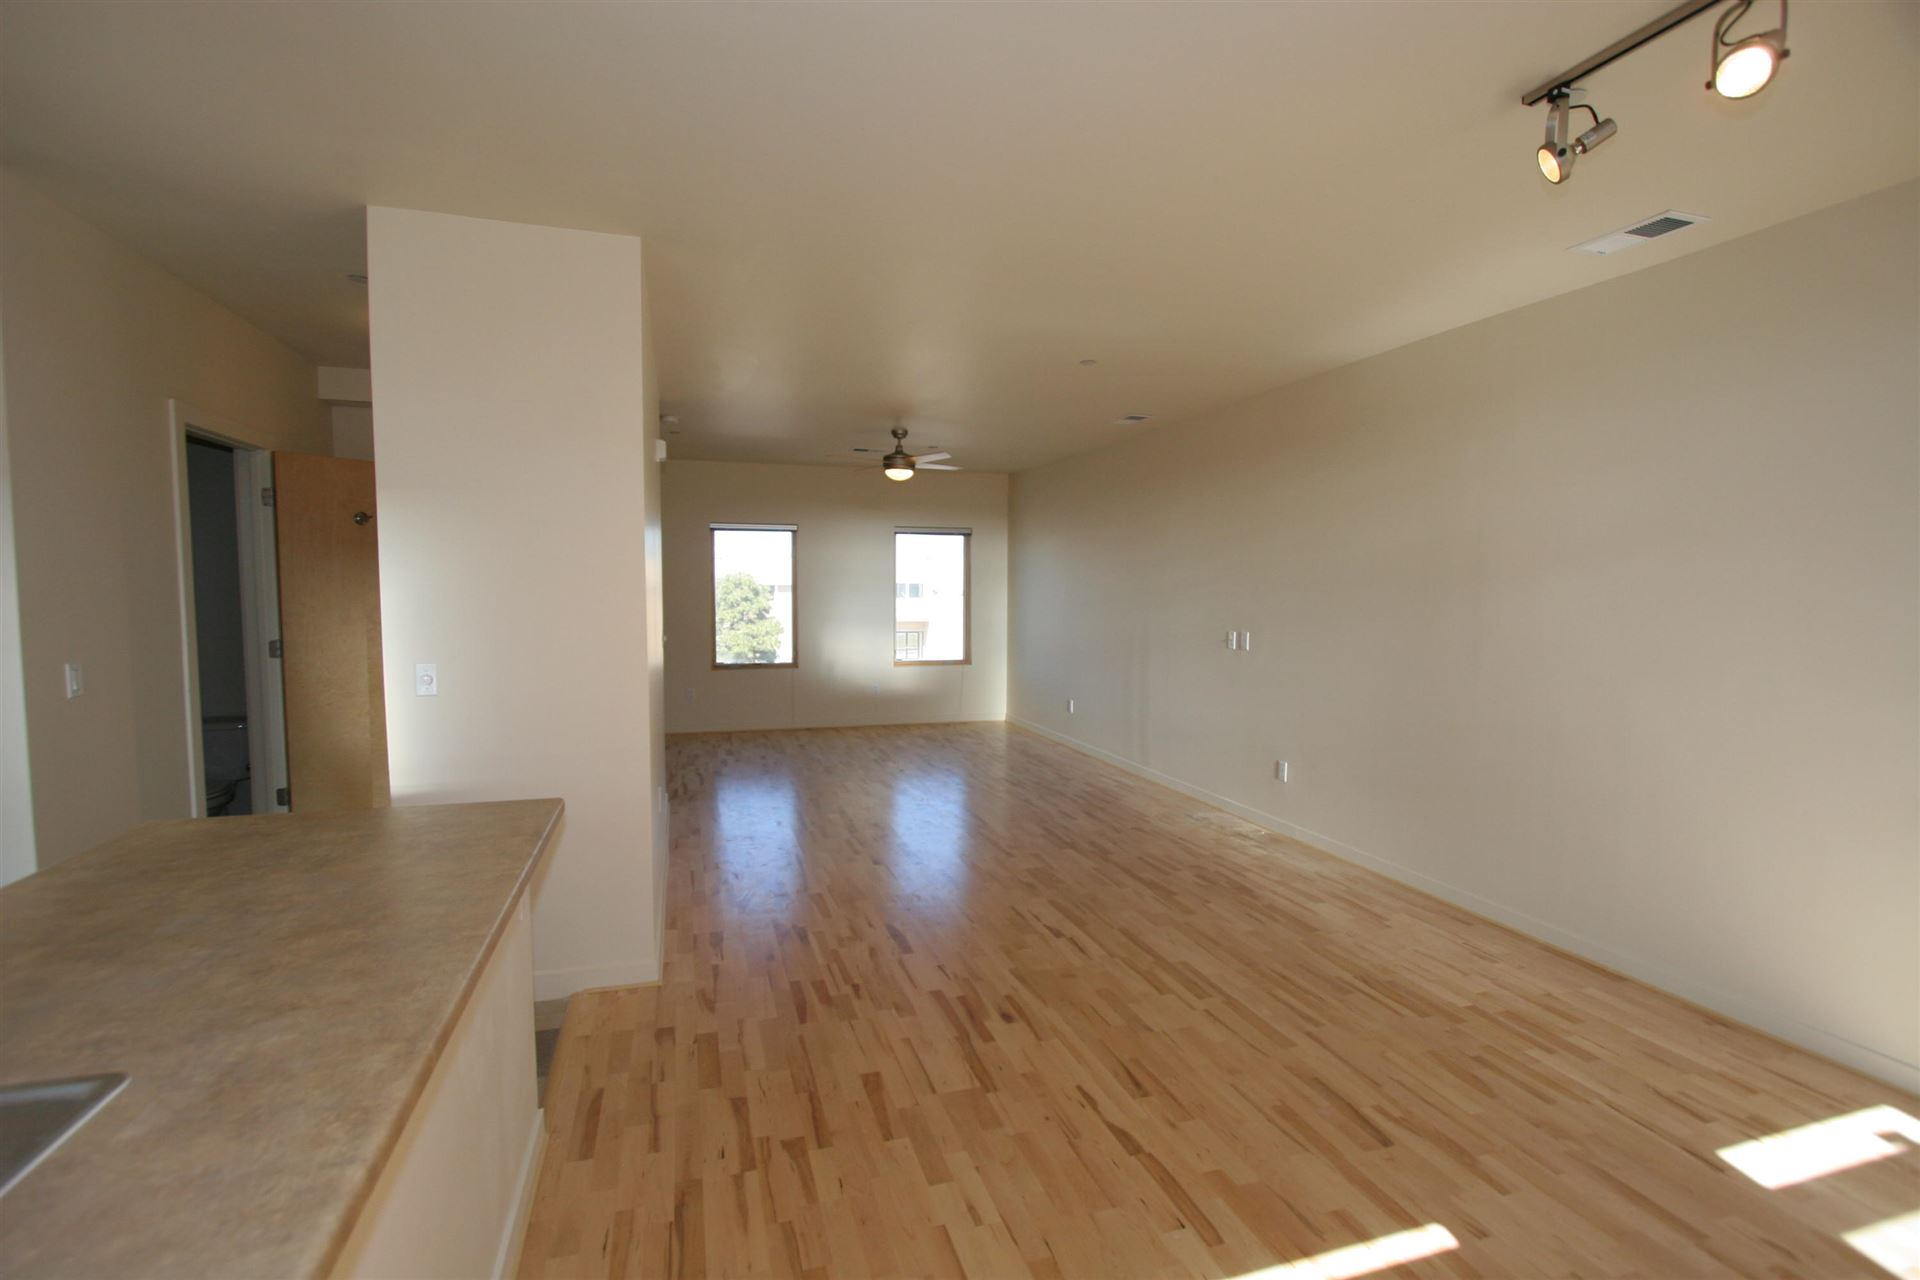 309 BEL VEDERE Lane, Albuquerque, NM 87102 - MLS#: 980137